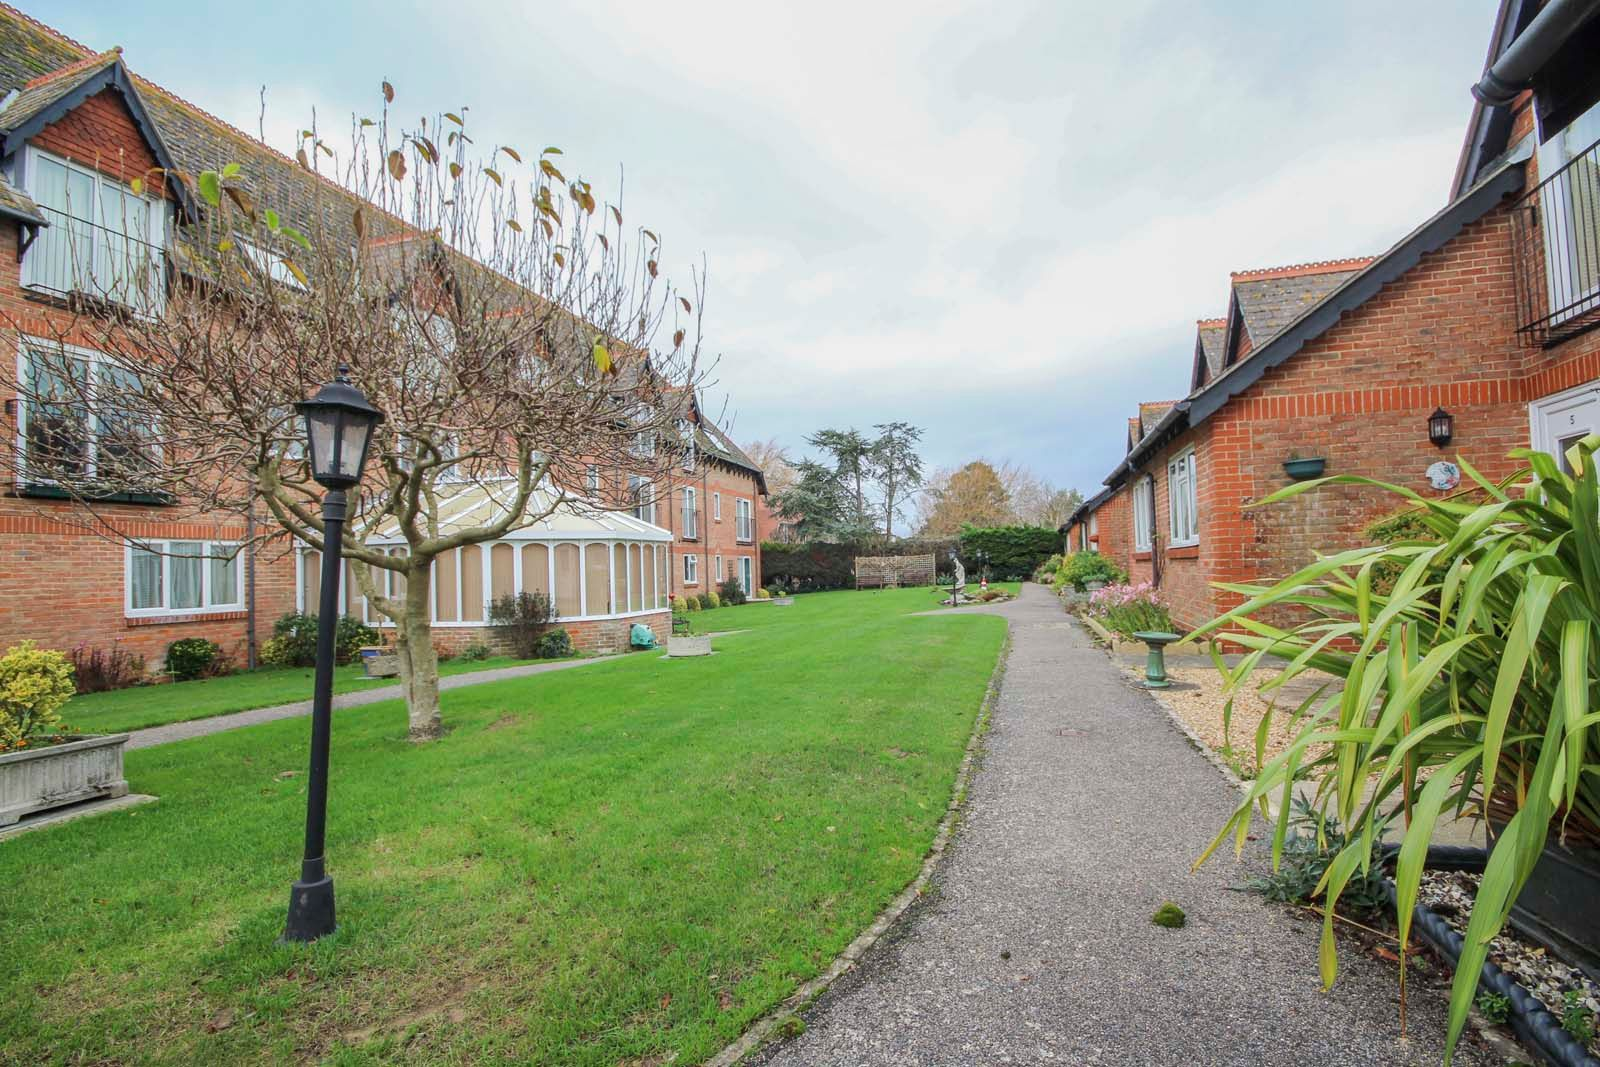 2 bed Apartment for sale in East Preston - Communal garden (Property Image 2)